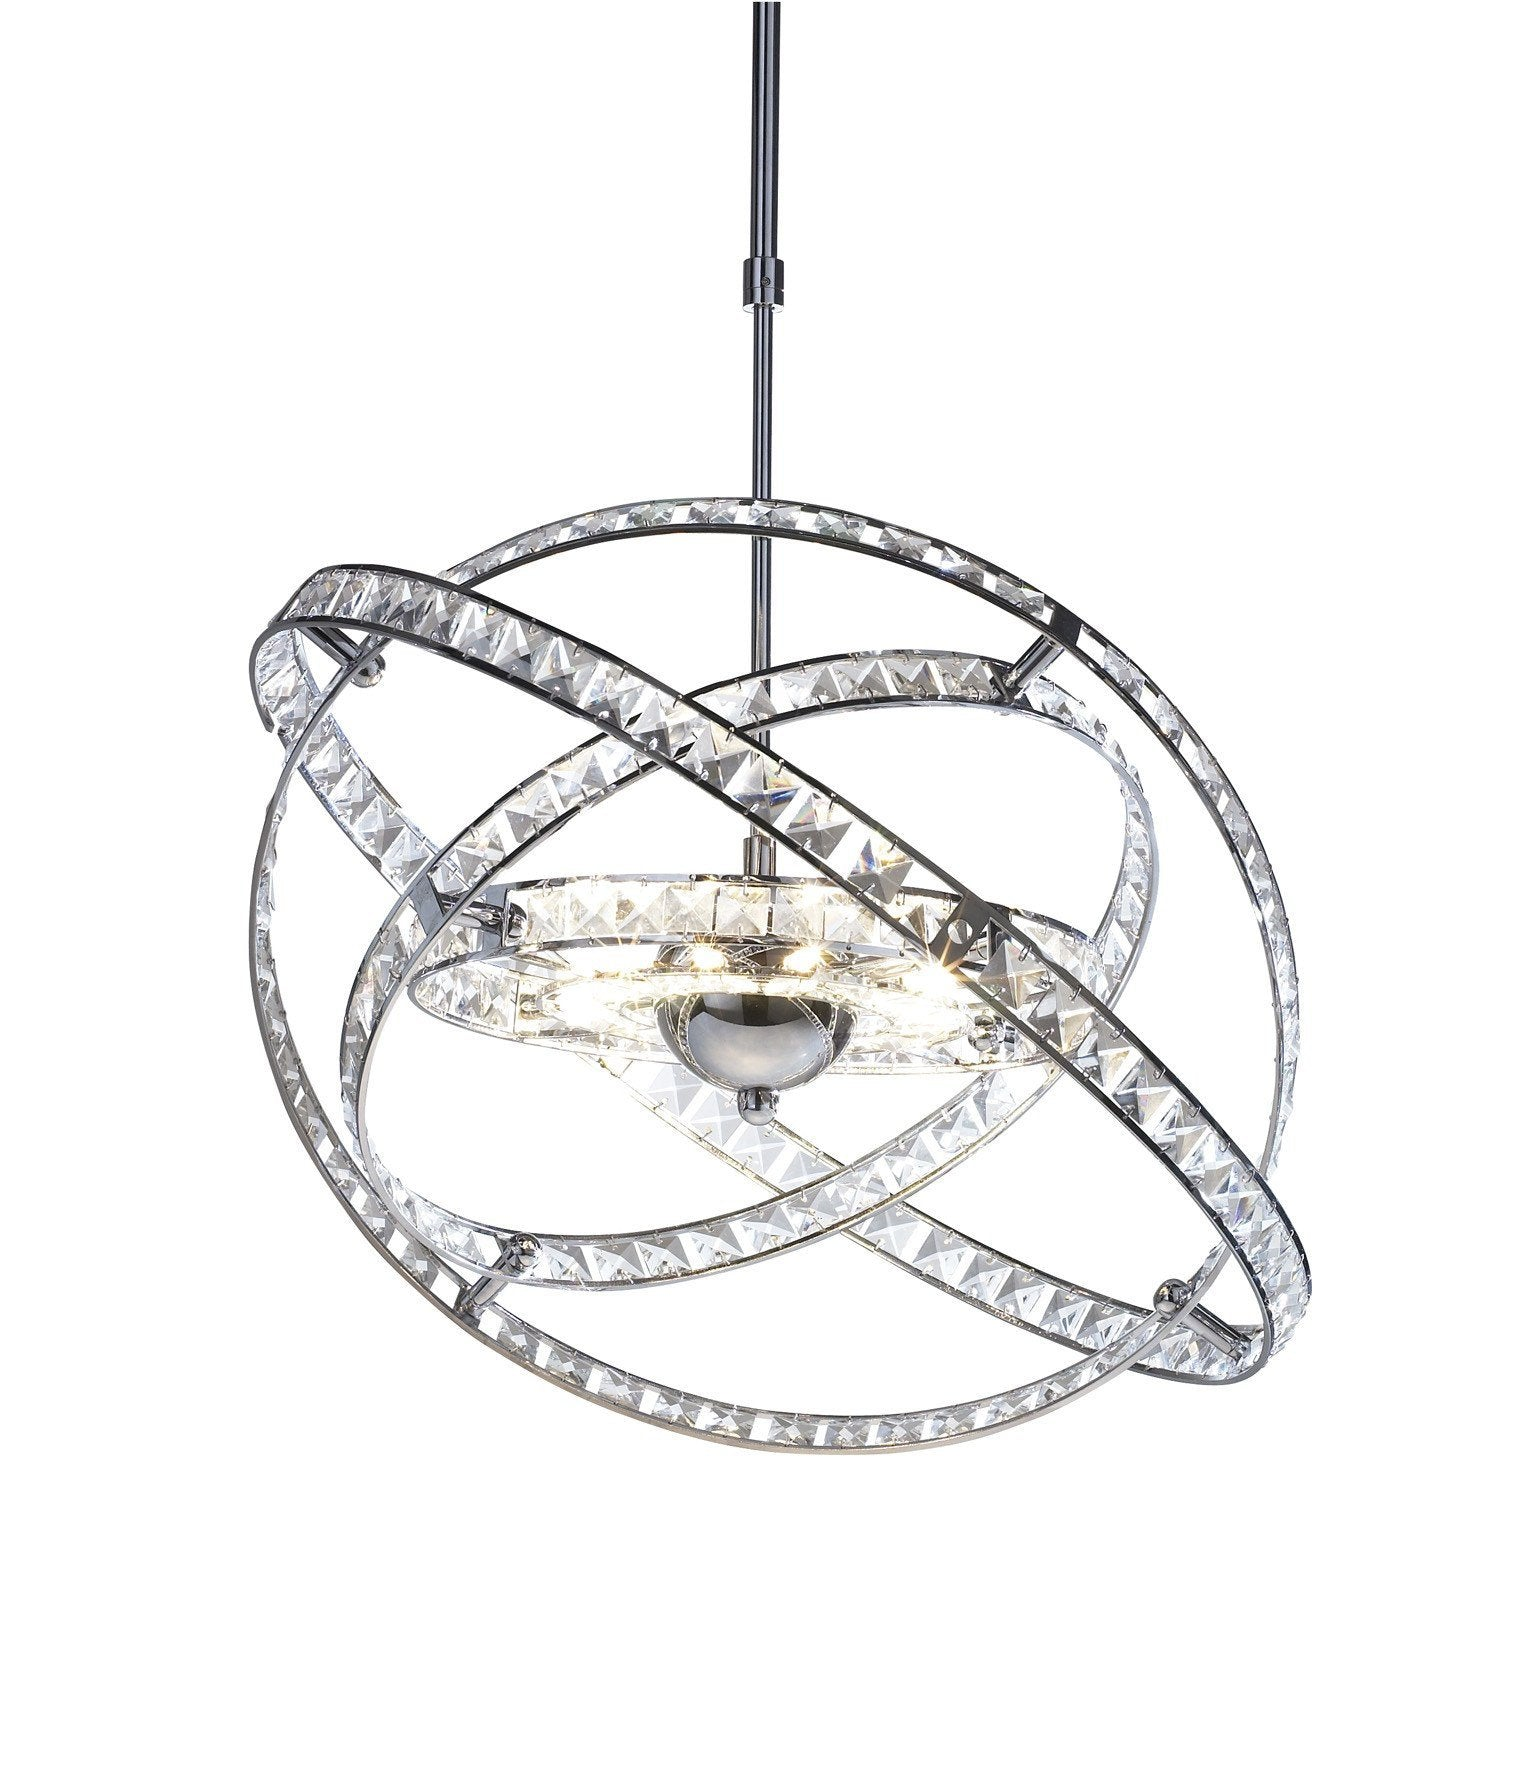 Eternity Chrome 10 Lamp Light Fixture - London Lighting - 1